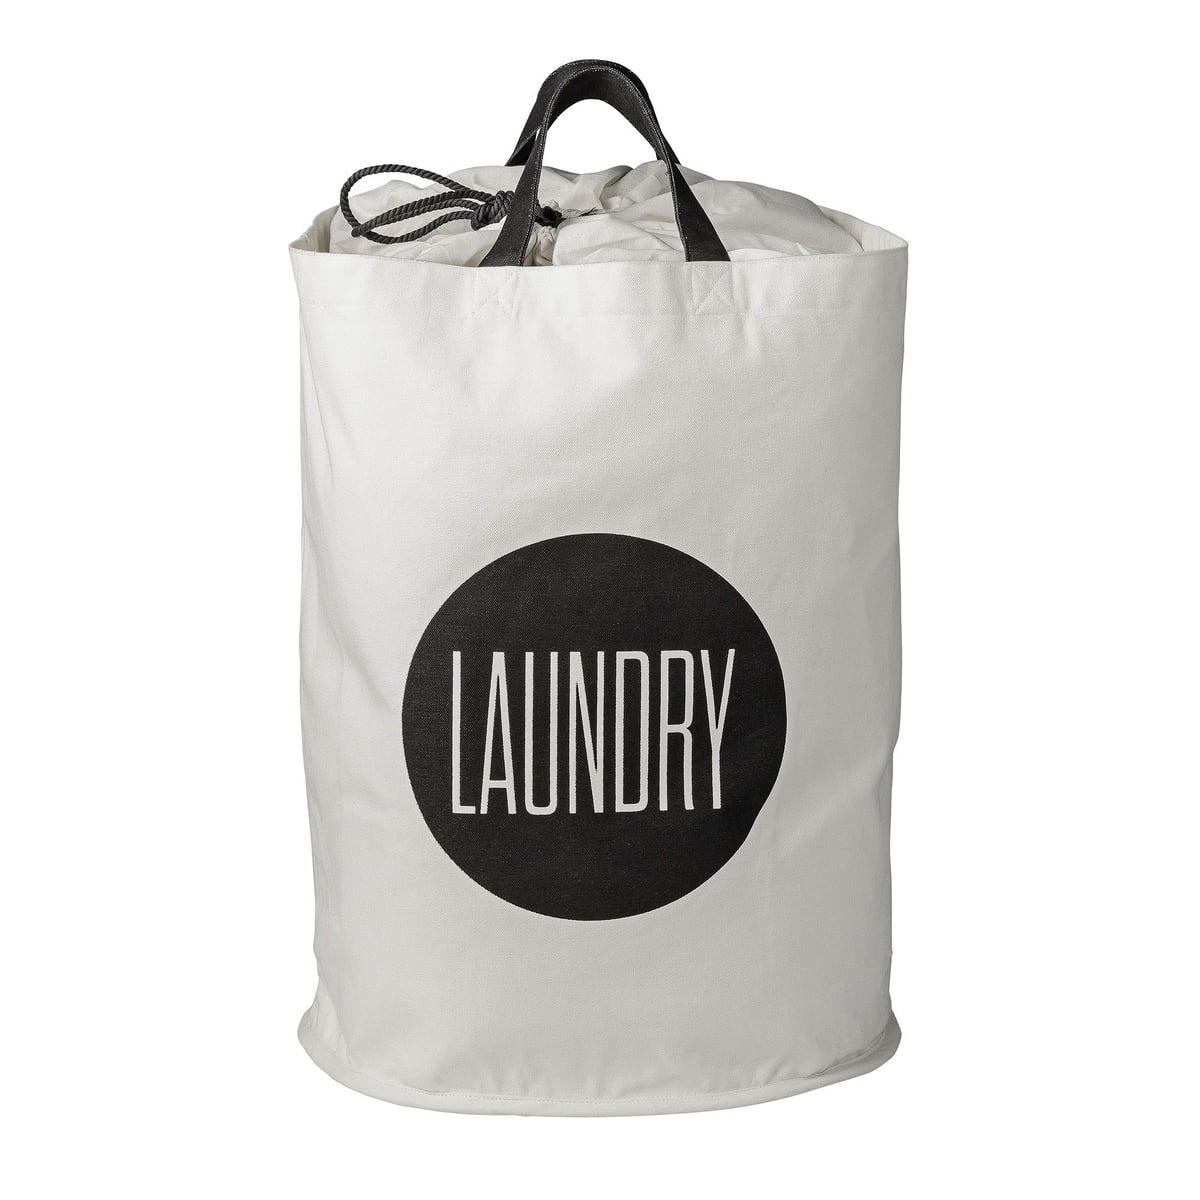 Laundry bags have zippered closures to keep your clothes secure and the mesh exterior allows for soap suds to easily rinse the clothes within. A must have for hotels, dorms, and rental properties, and for resale at laundry facilities.